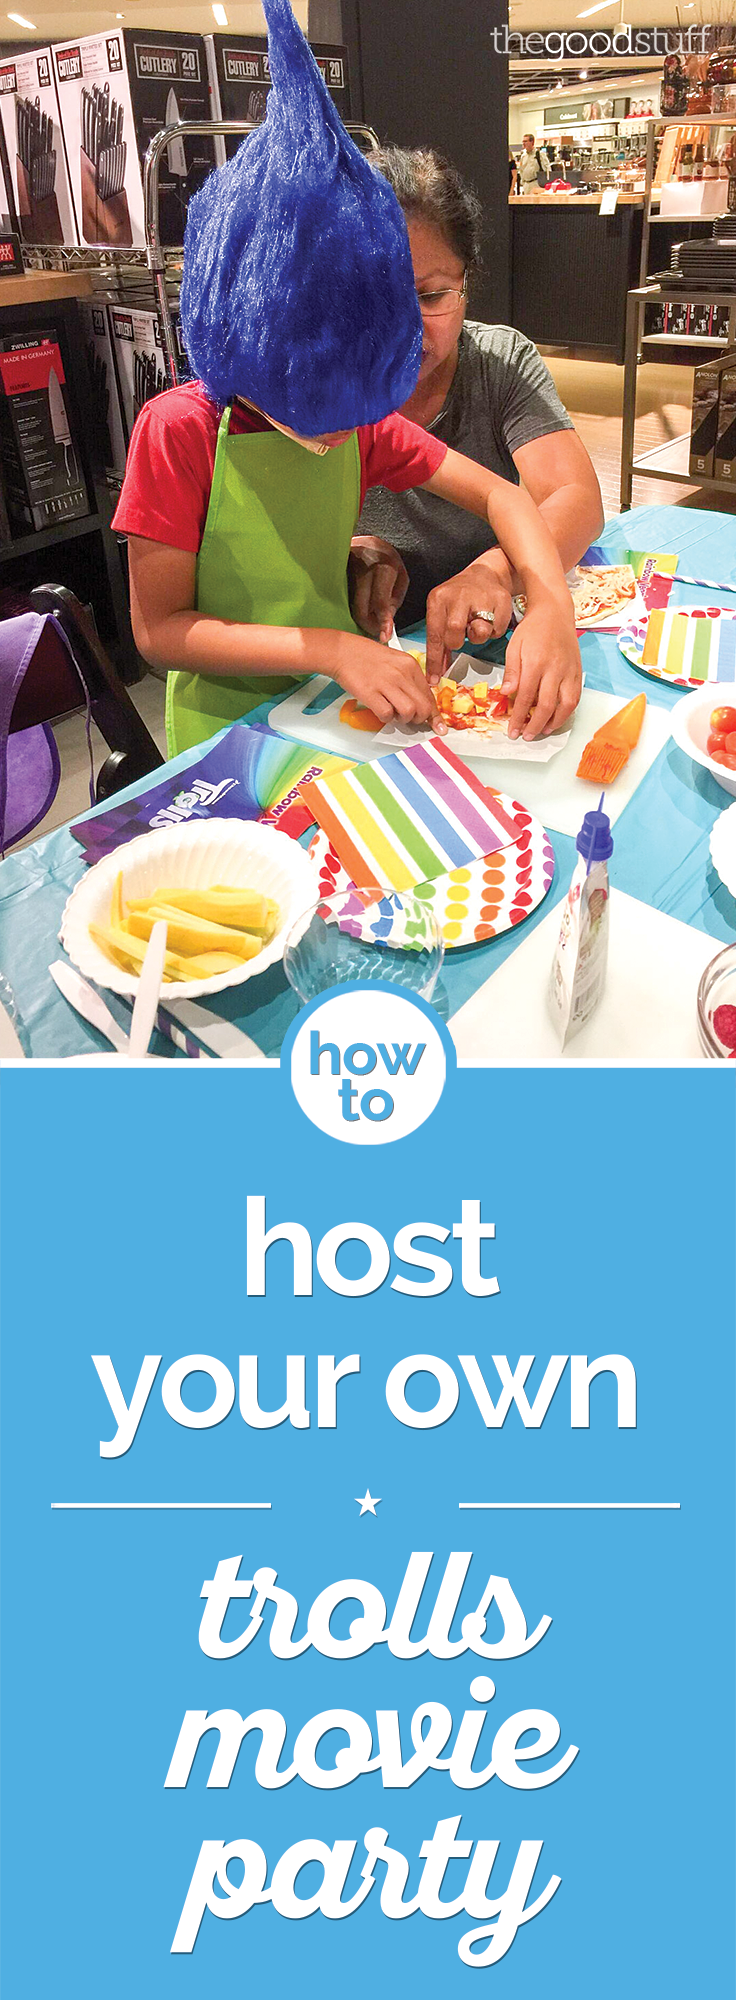 How To Host Your Own Trolls Movie Party  Thegoodstuff. Sales Marketing Coordinator Notice Of Vacate. Contact Relationship Management Software. Medical Billing And Reimbursement. Liability Insurance Costs For Small Business. Auguste Escoffier School Of Culinary Arts Austin. Enterprise Website Design Orkin Birmingham Al. Solaris Performance Monitoring. How To Get Surety Bond Osteoporosis Back Pain